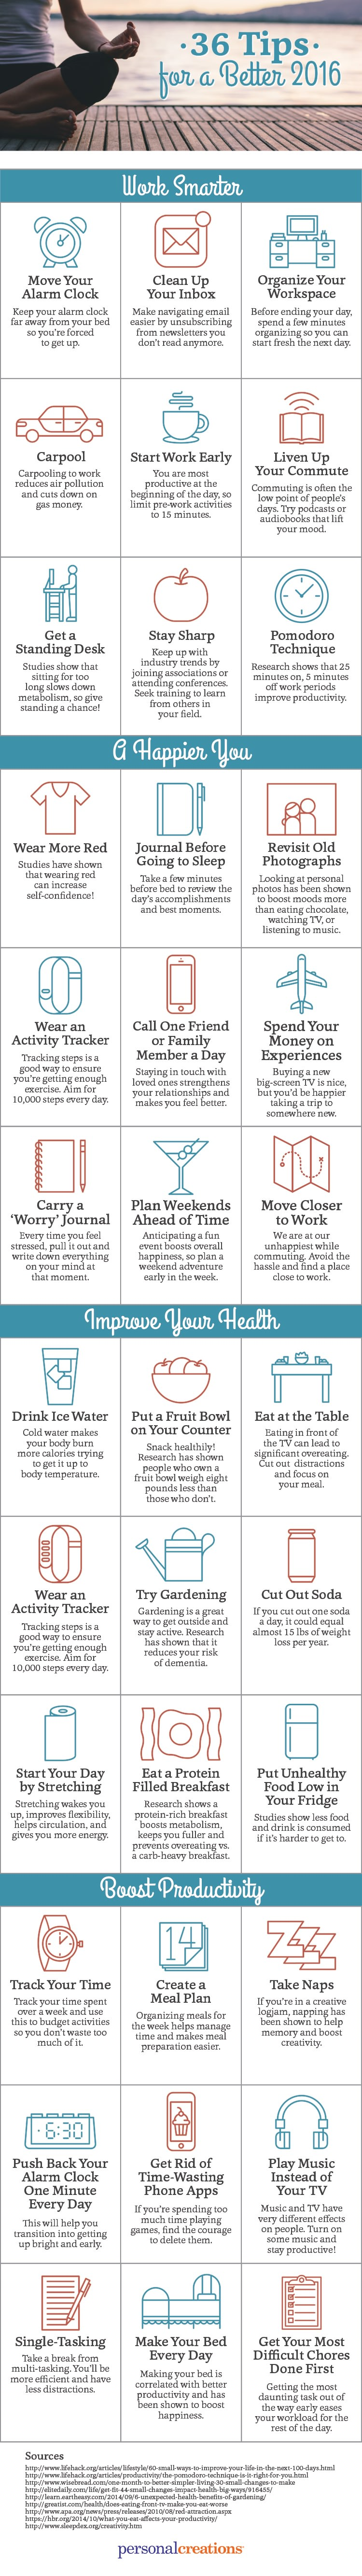 36 Tips for a Better Year: This graphic includes 36 different tips to work smarter, live happier, improve your health, and boost your productivity. Talk about a useful set of self-improvement tips!